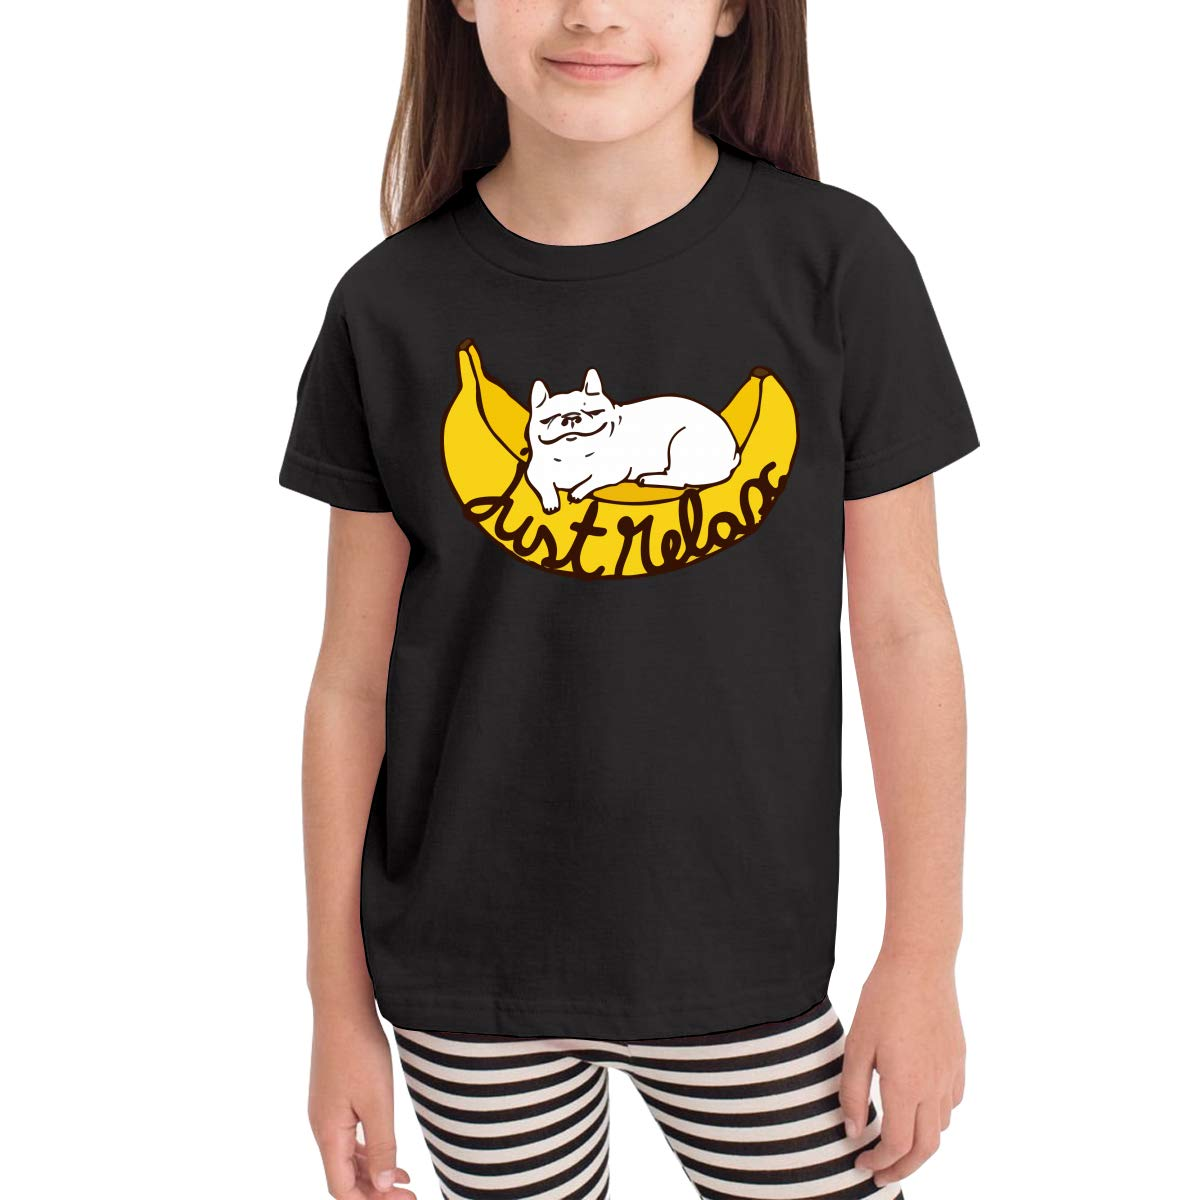 JUST Relax Kids Cotton T-Shirt Basic Soft Short Sleeve Tee Tops for Baby Boys Girls